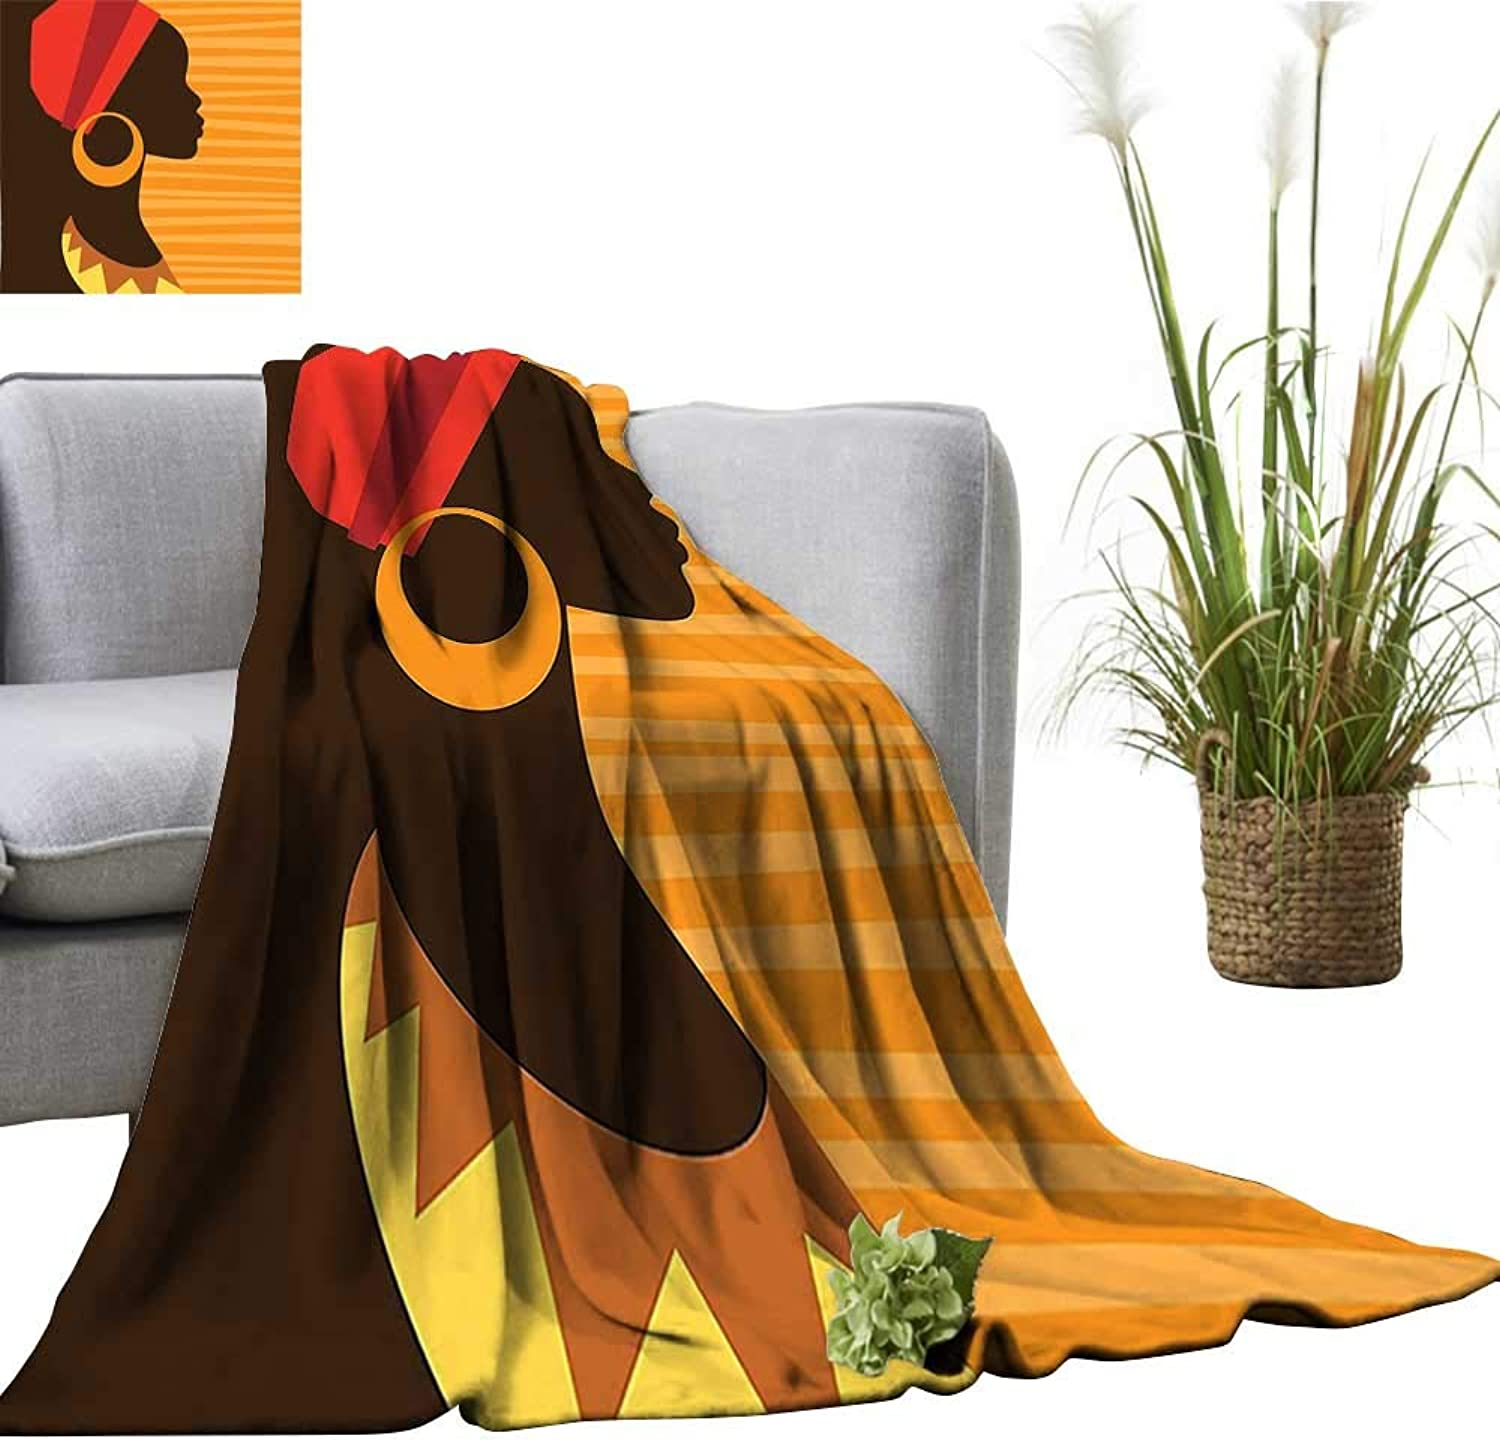 YOYI Super Soft Blanket Girl Profile Silhouette with Earrings Grace and Elegance Icon Image Dark Brown Merigold Bedsure Flannel 60 x78